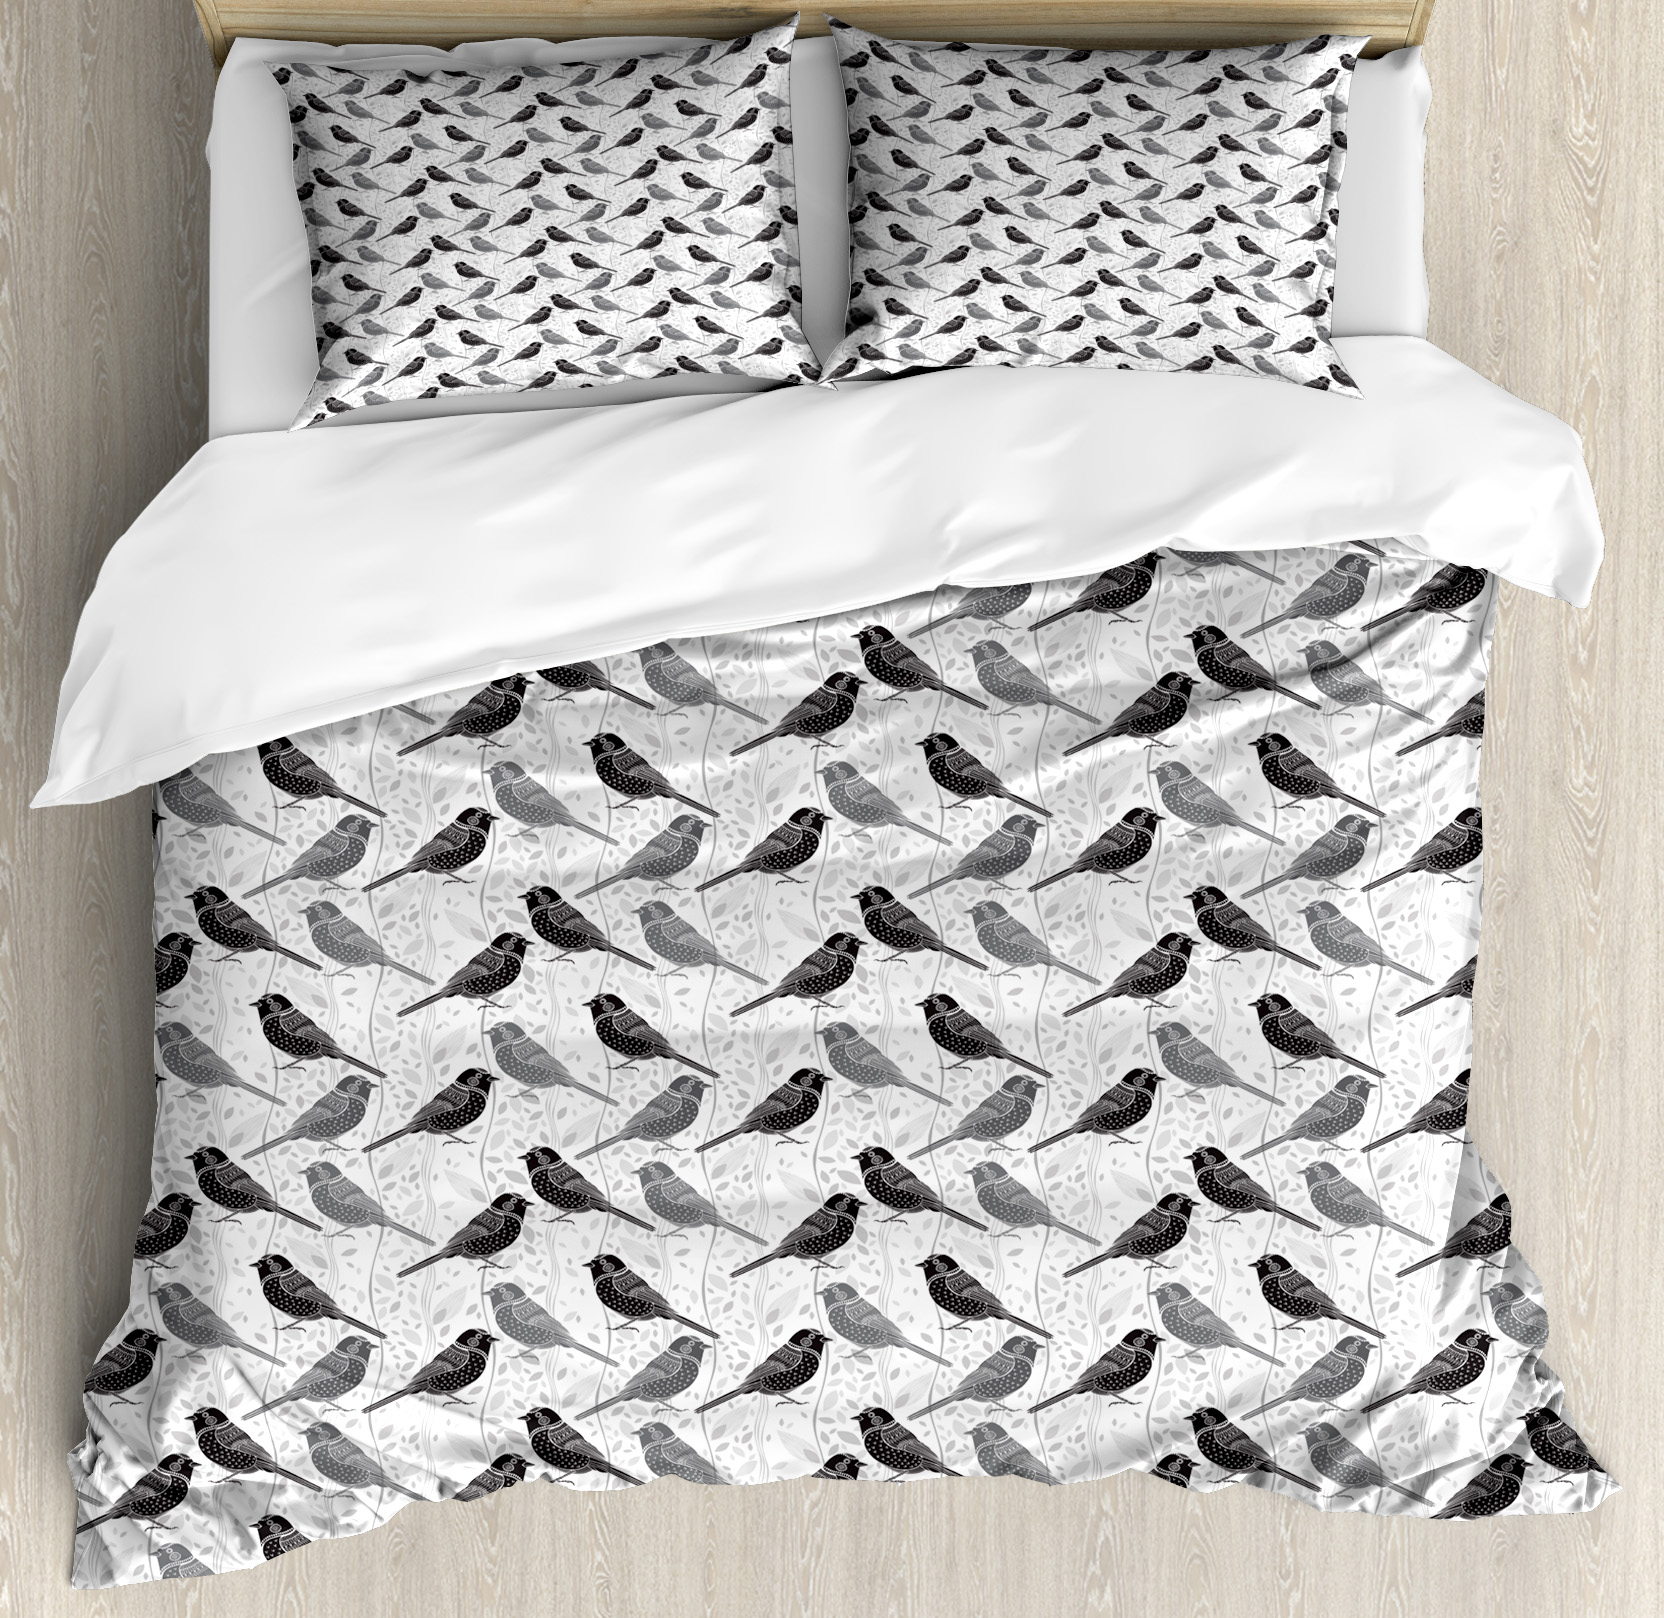 Birds King Size Duvet Cover Set, Silhouette of Damask Patterned Northern Mockingbirds on Fluctuating Leaves, Decorative 3 Piece Bedding Set with 2 Pillow Shams, Grey Black White, by Ambesonne